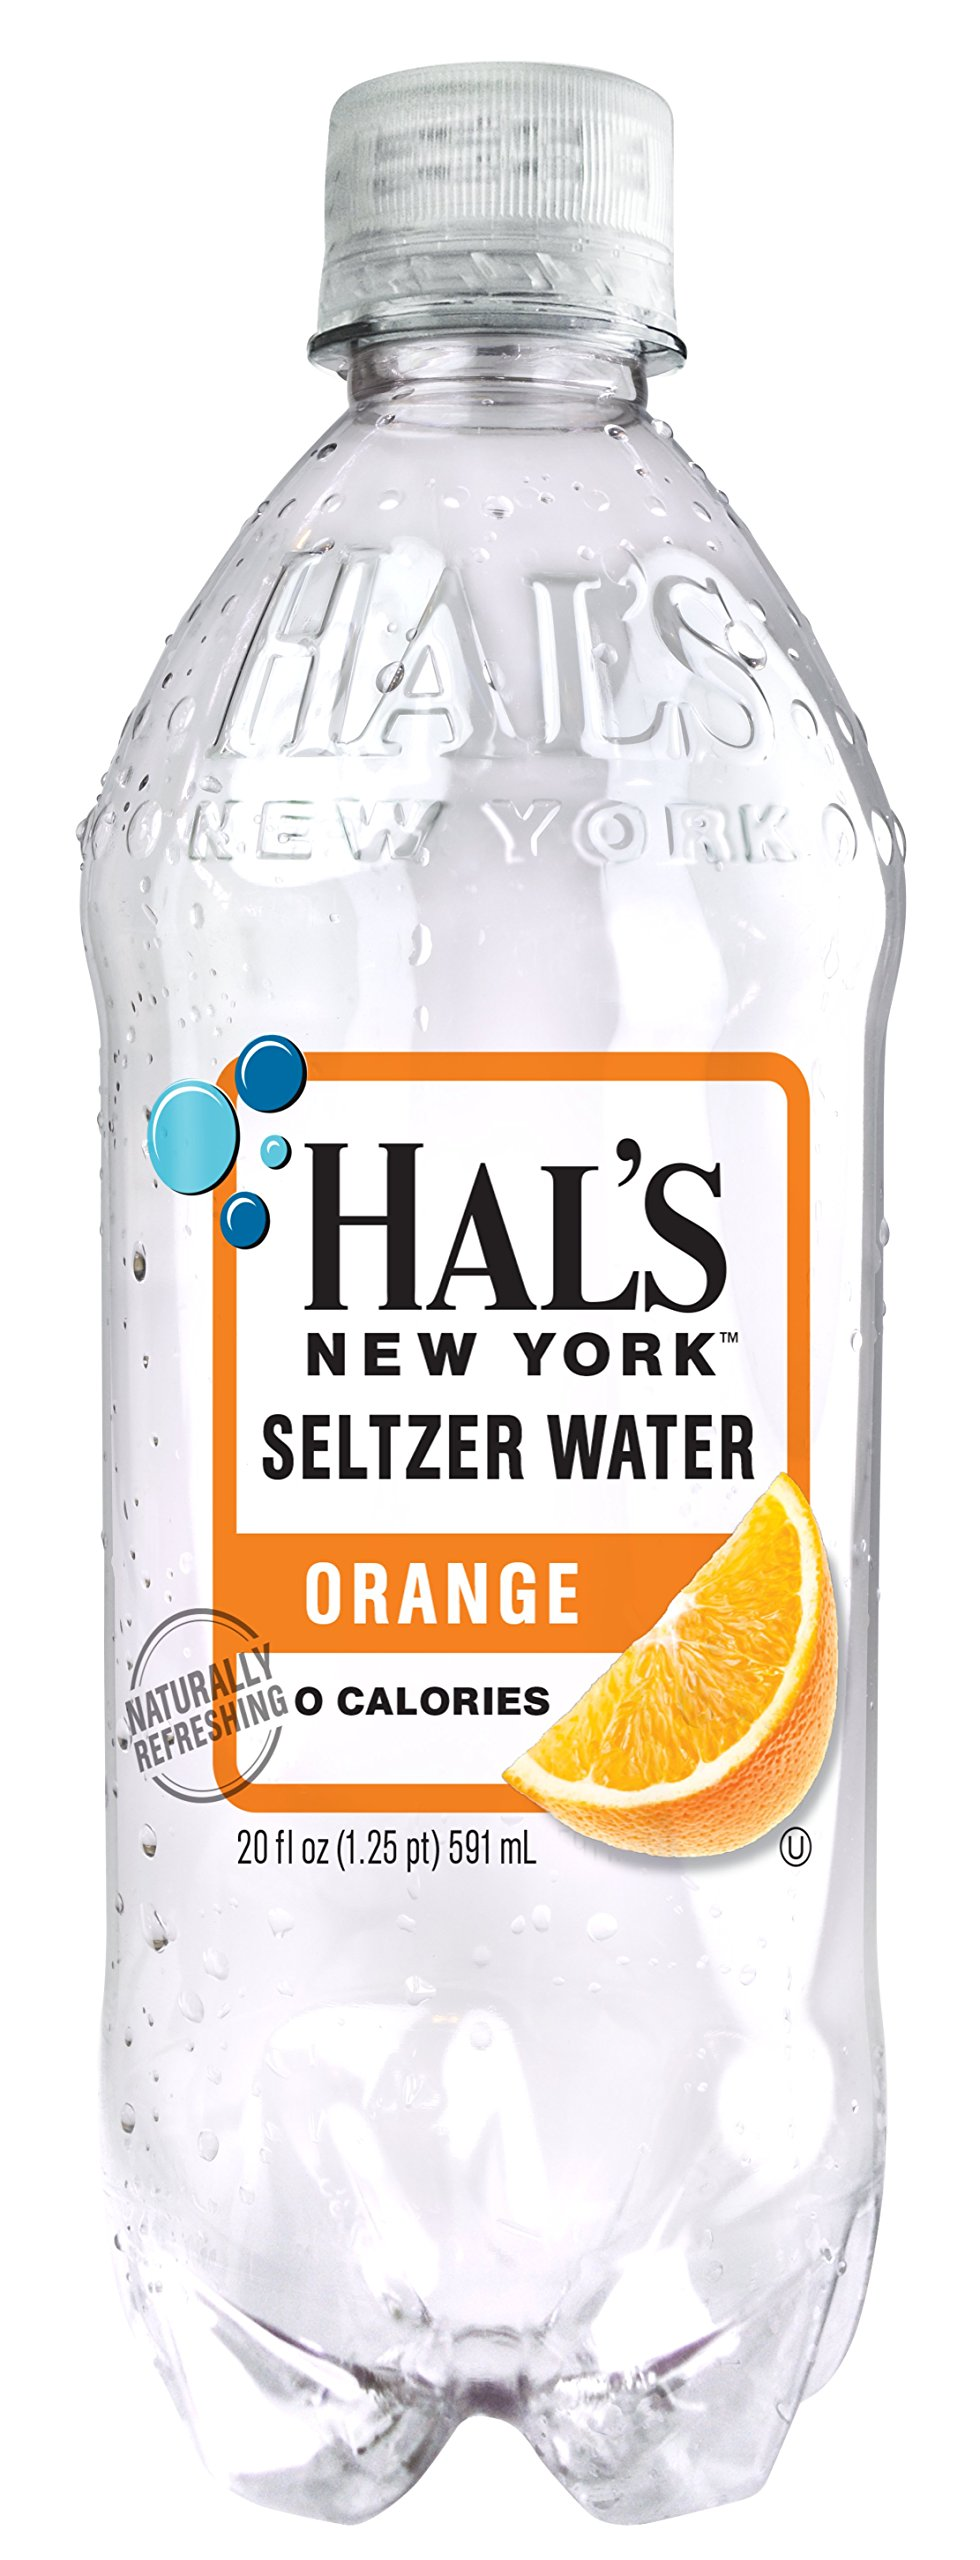 Hal's NY Seltzer Water 20 Oz Bottles (Pack of 24) (Orange) by Hal's New York